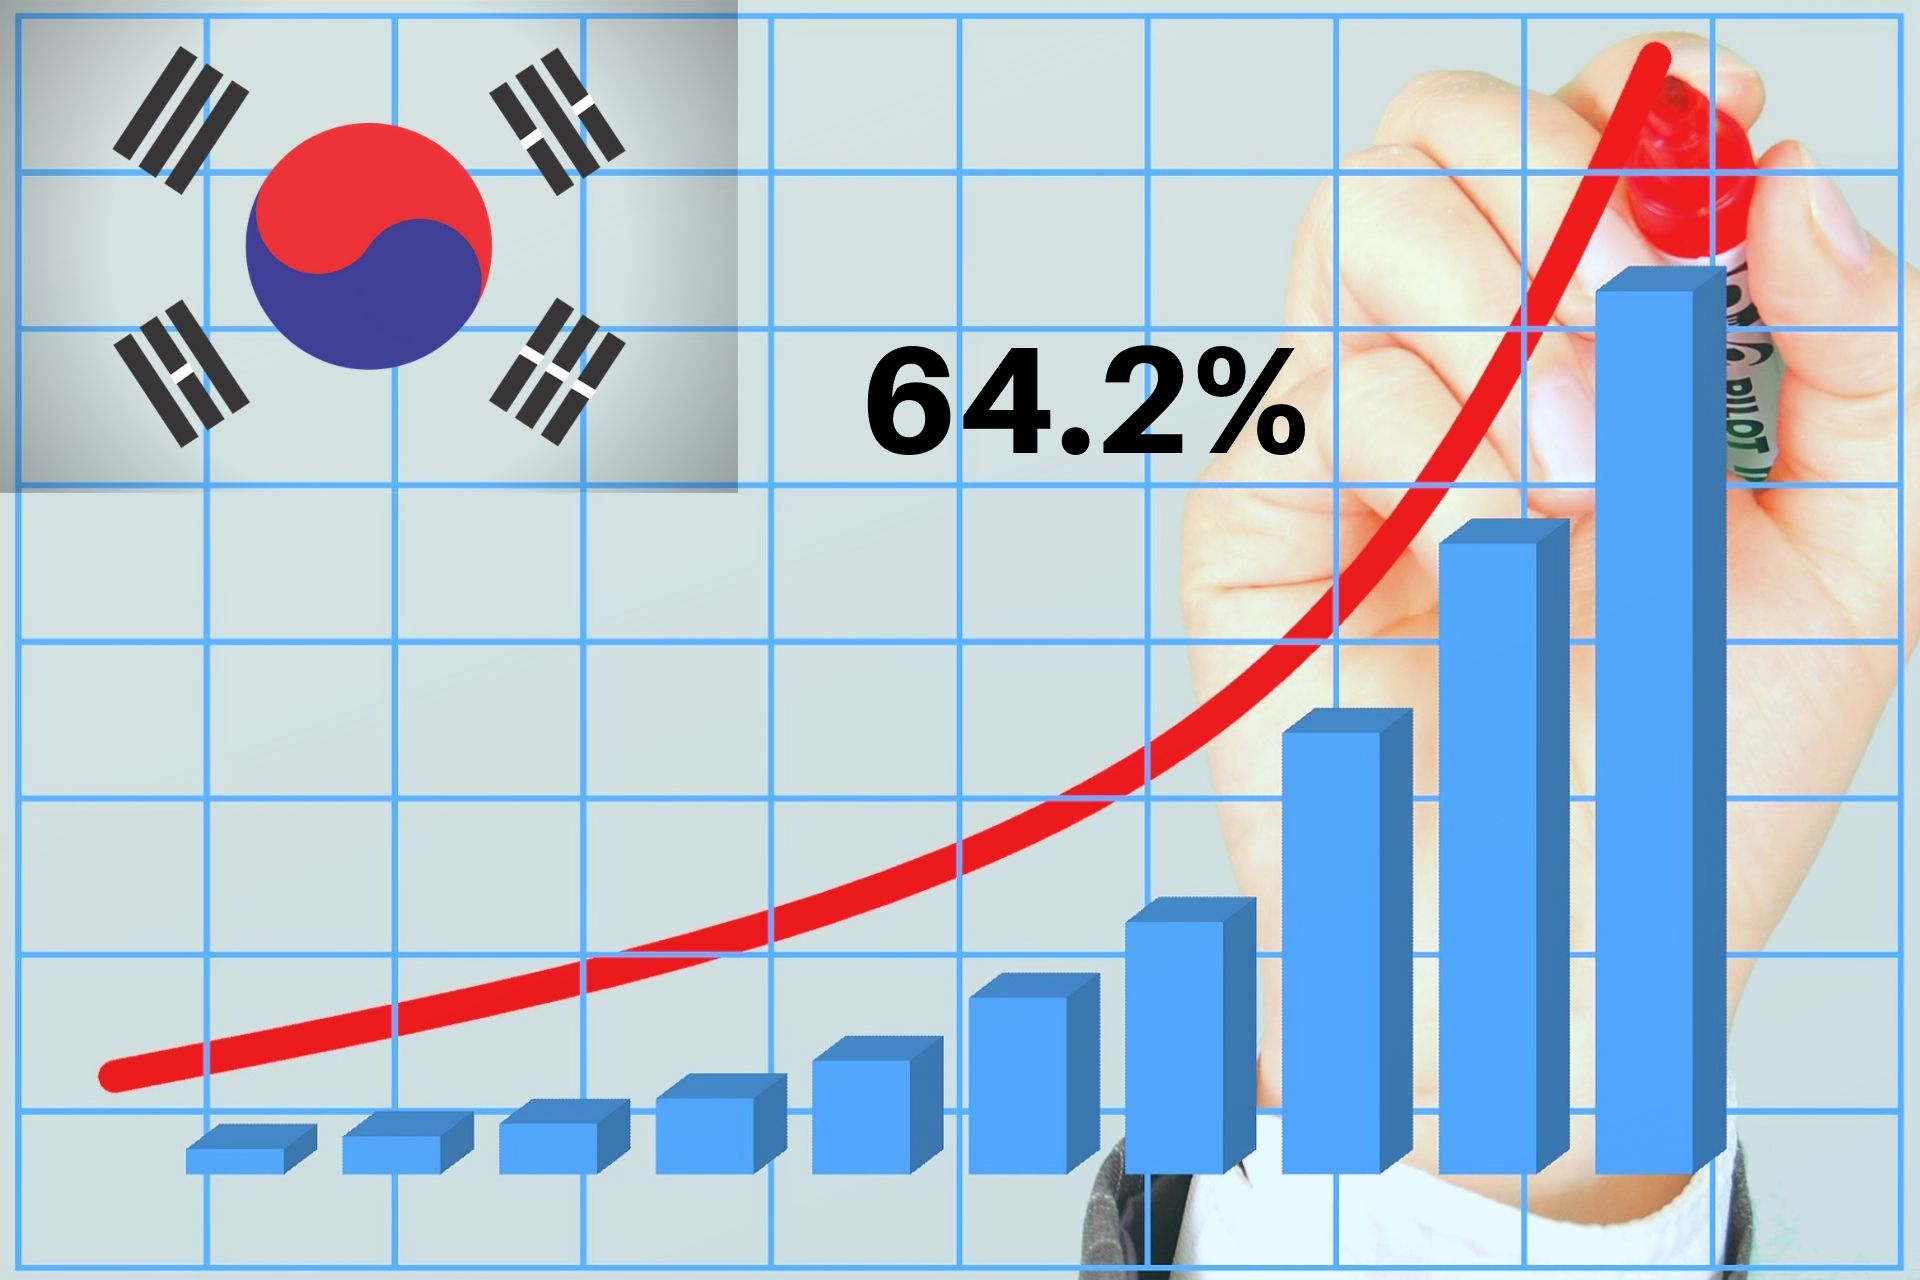 South Koreans Crypto Holdings Has Increased By 64%